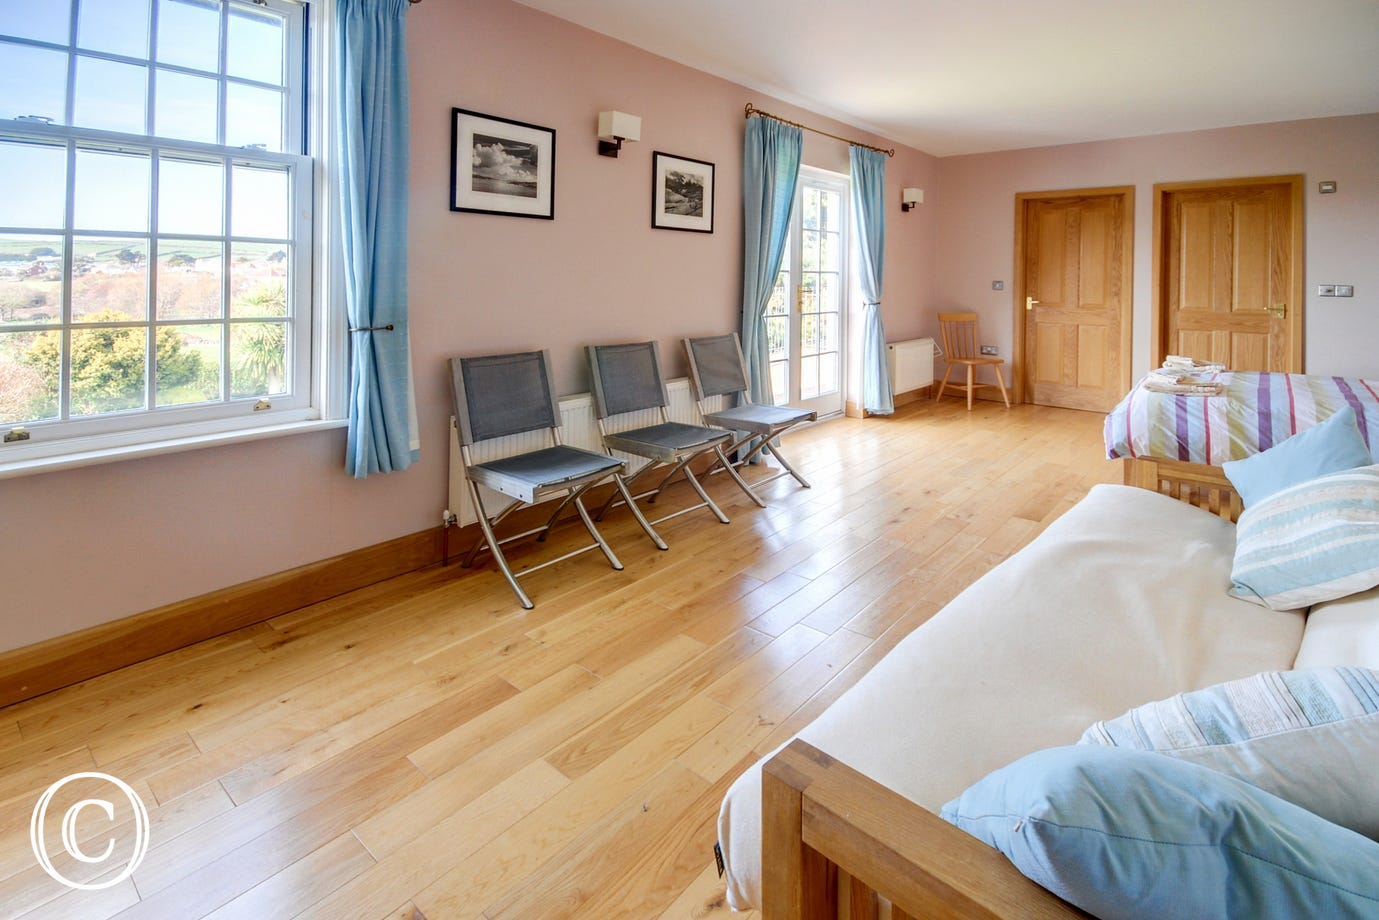 Very spacious master bedroom with wooden floors and seating